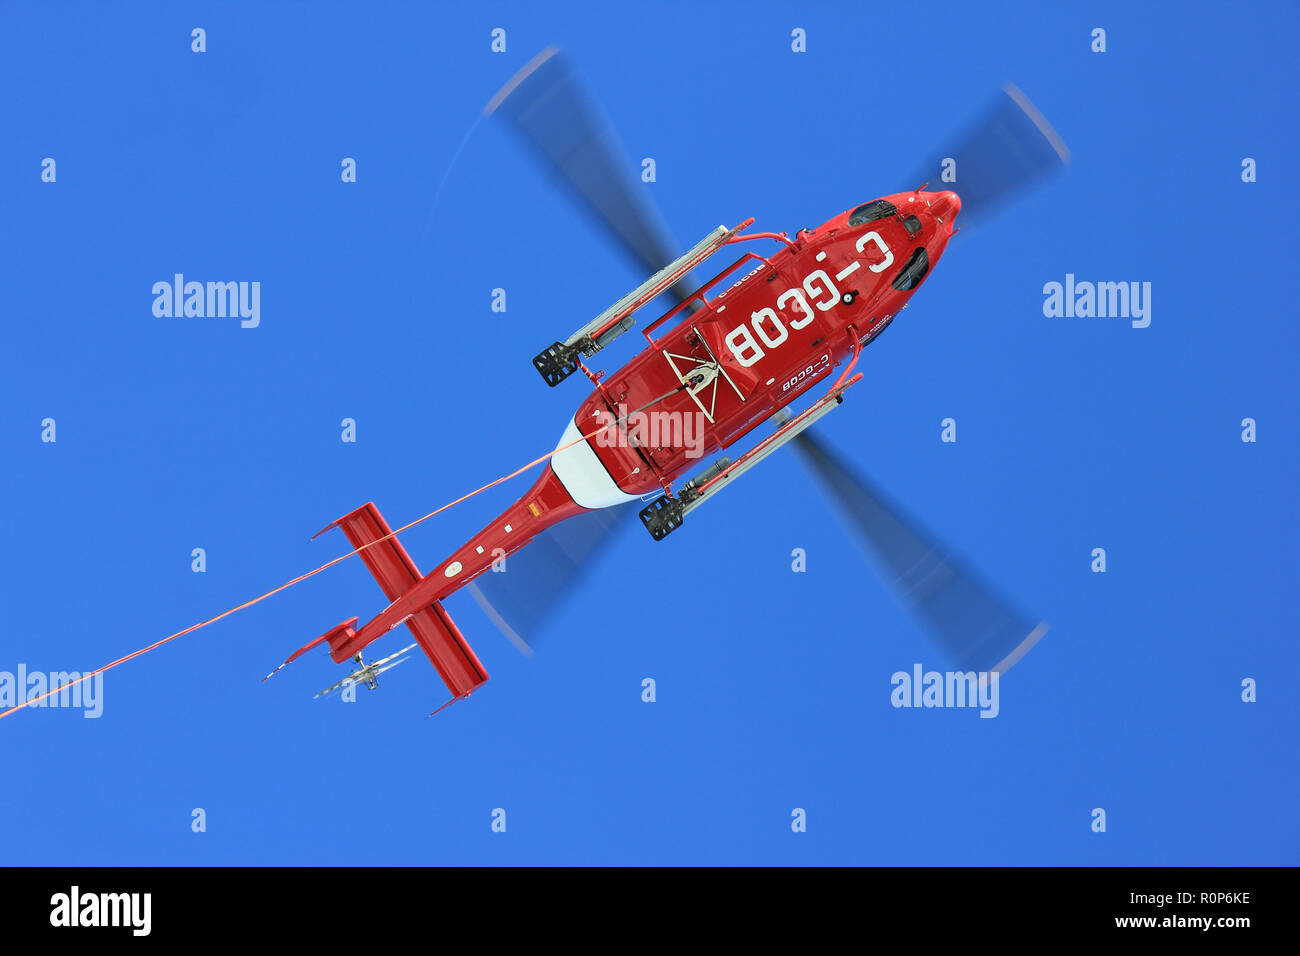 Canadian Coast Guard, Bell 429 Helicopter assigned to the CCGS Amundsen viewed from below - Stock Image